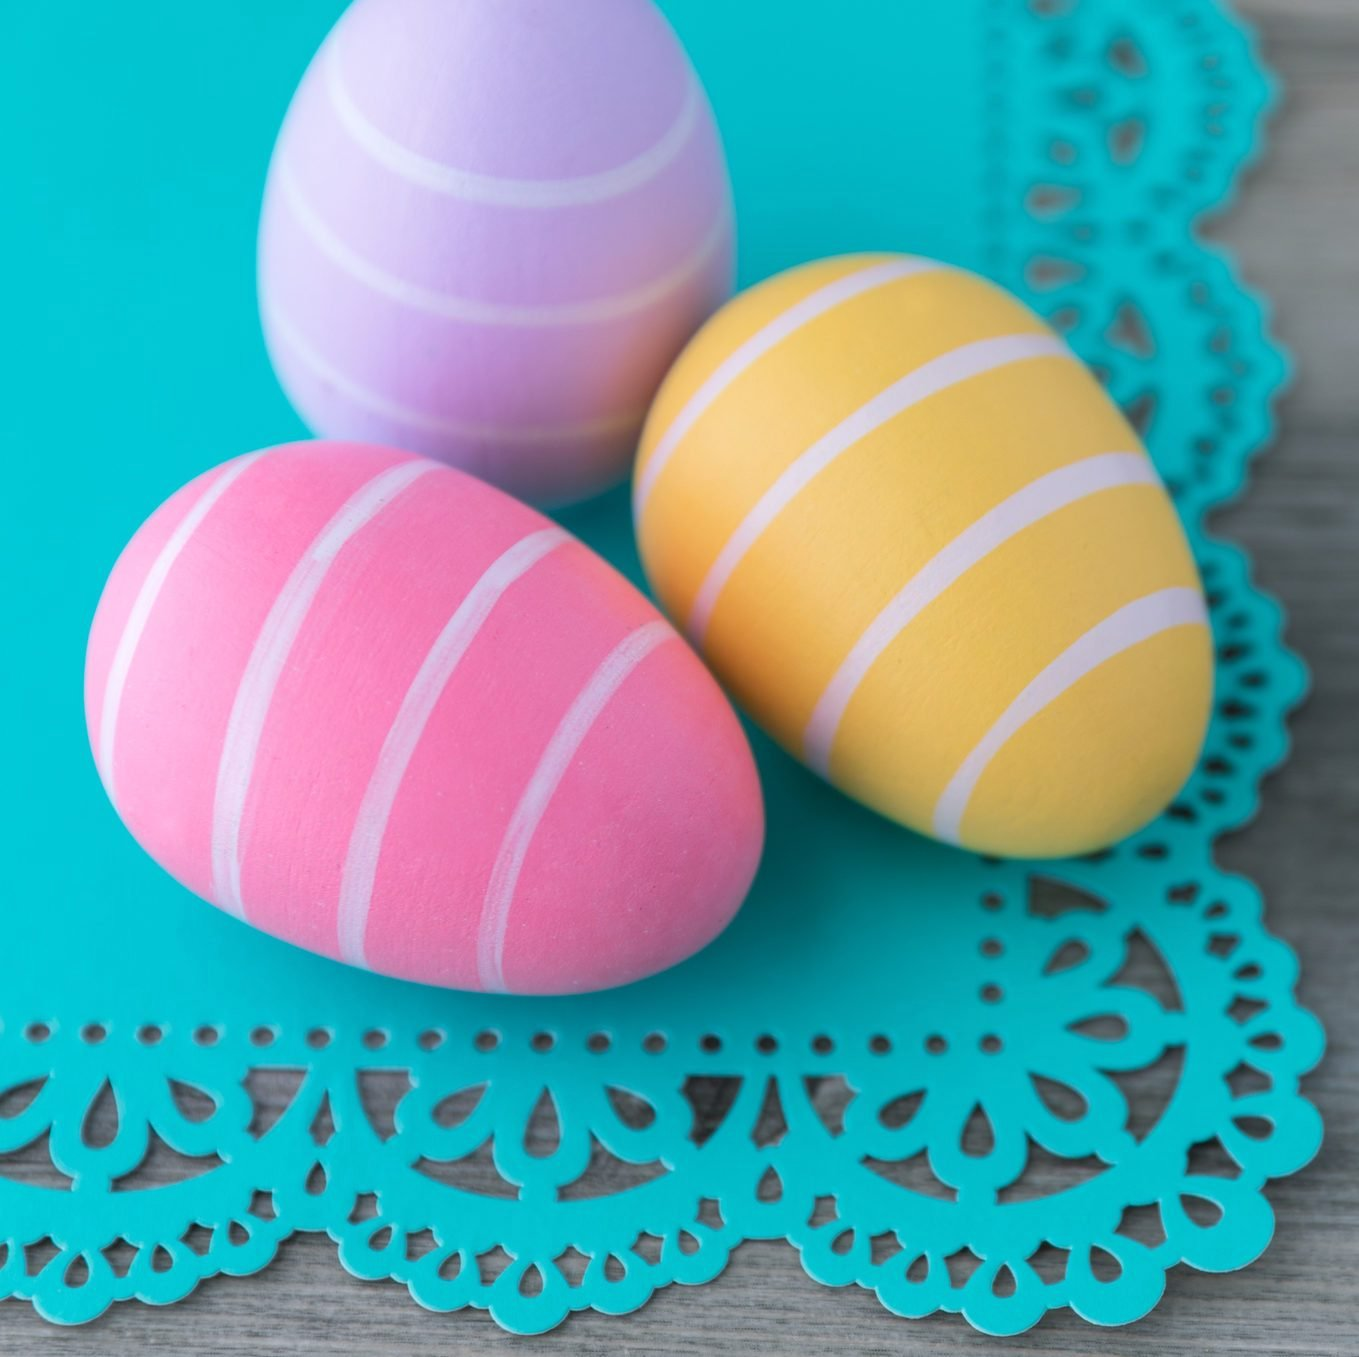 Colorful striped Easter eggs